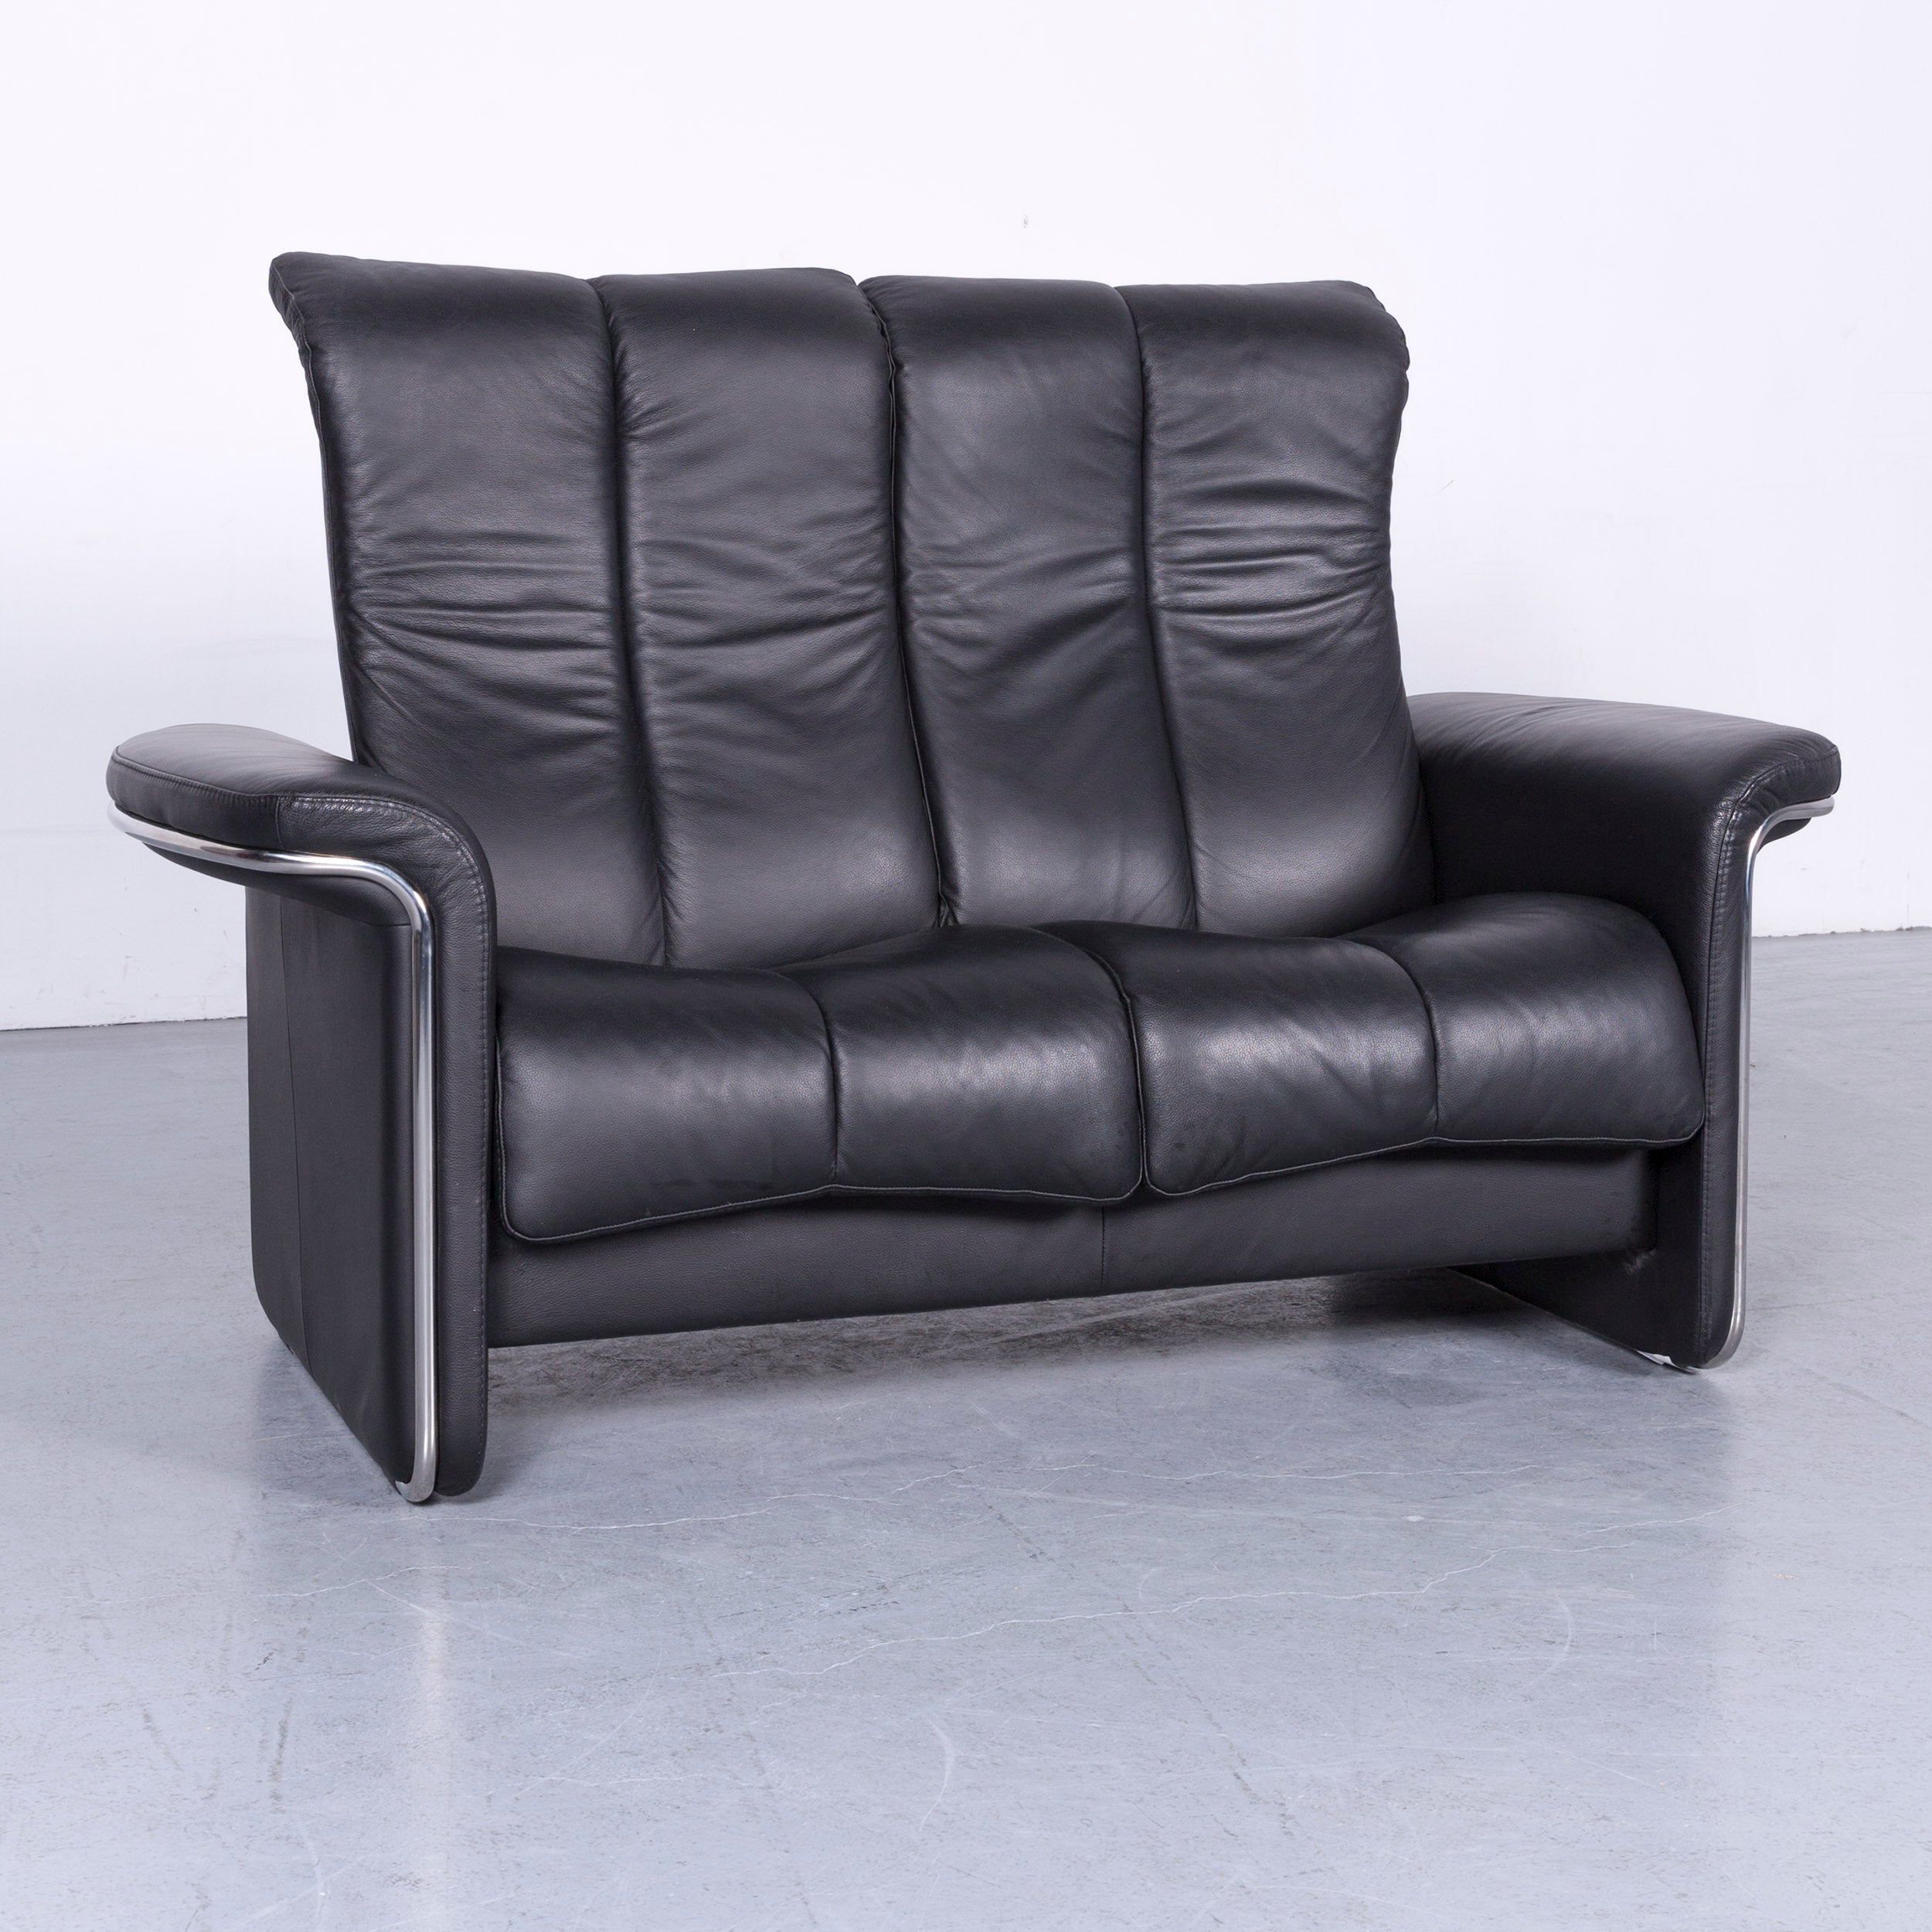 Relax Sofa Ekornes Stressless Soul Relax Sofa Black Leather Tv Recliner Two Seat